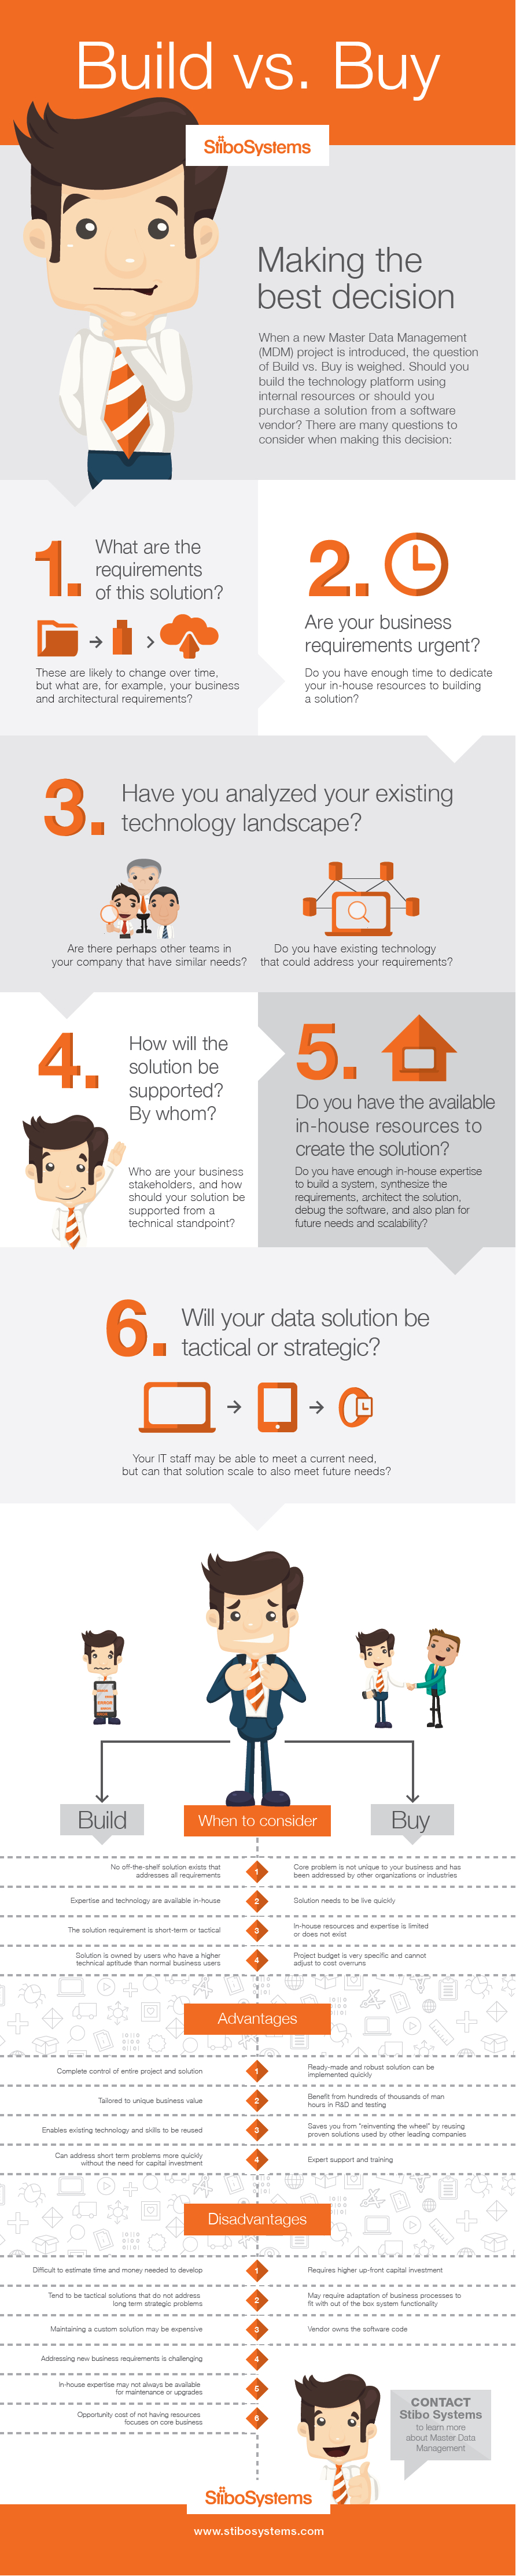 When Contemplating Master Data Management, Should You Buy or Build?